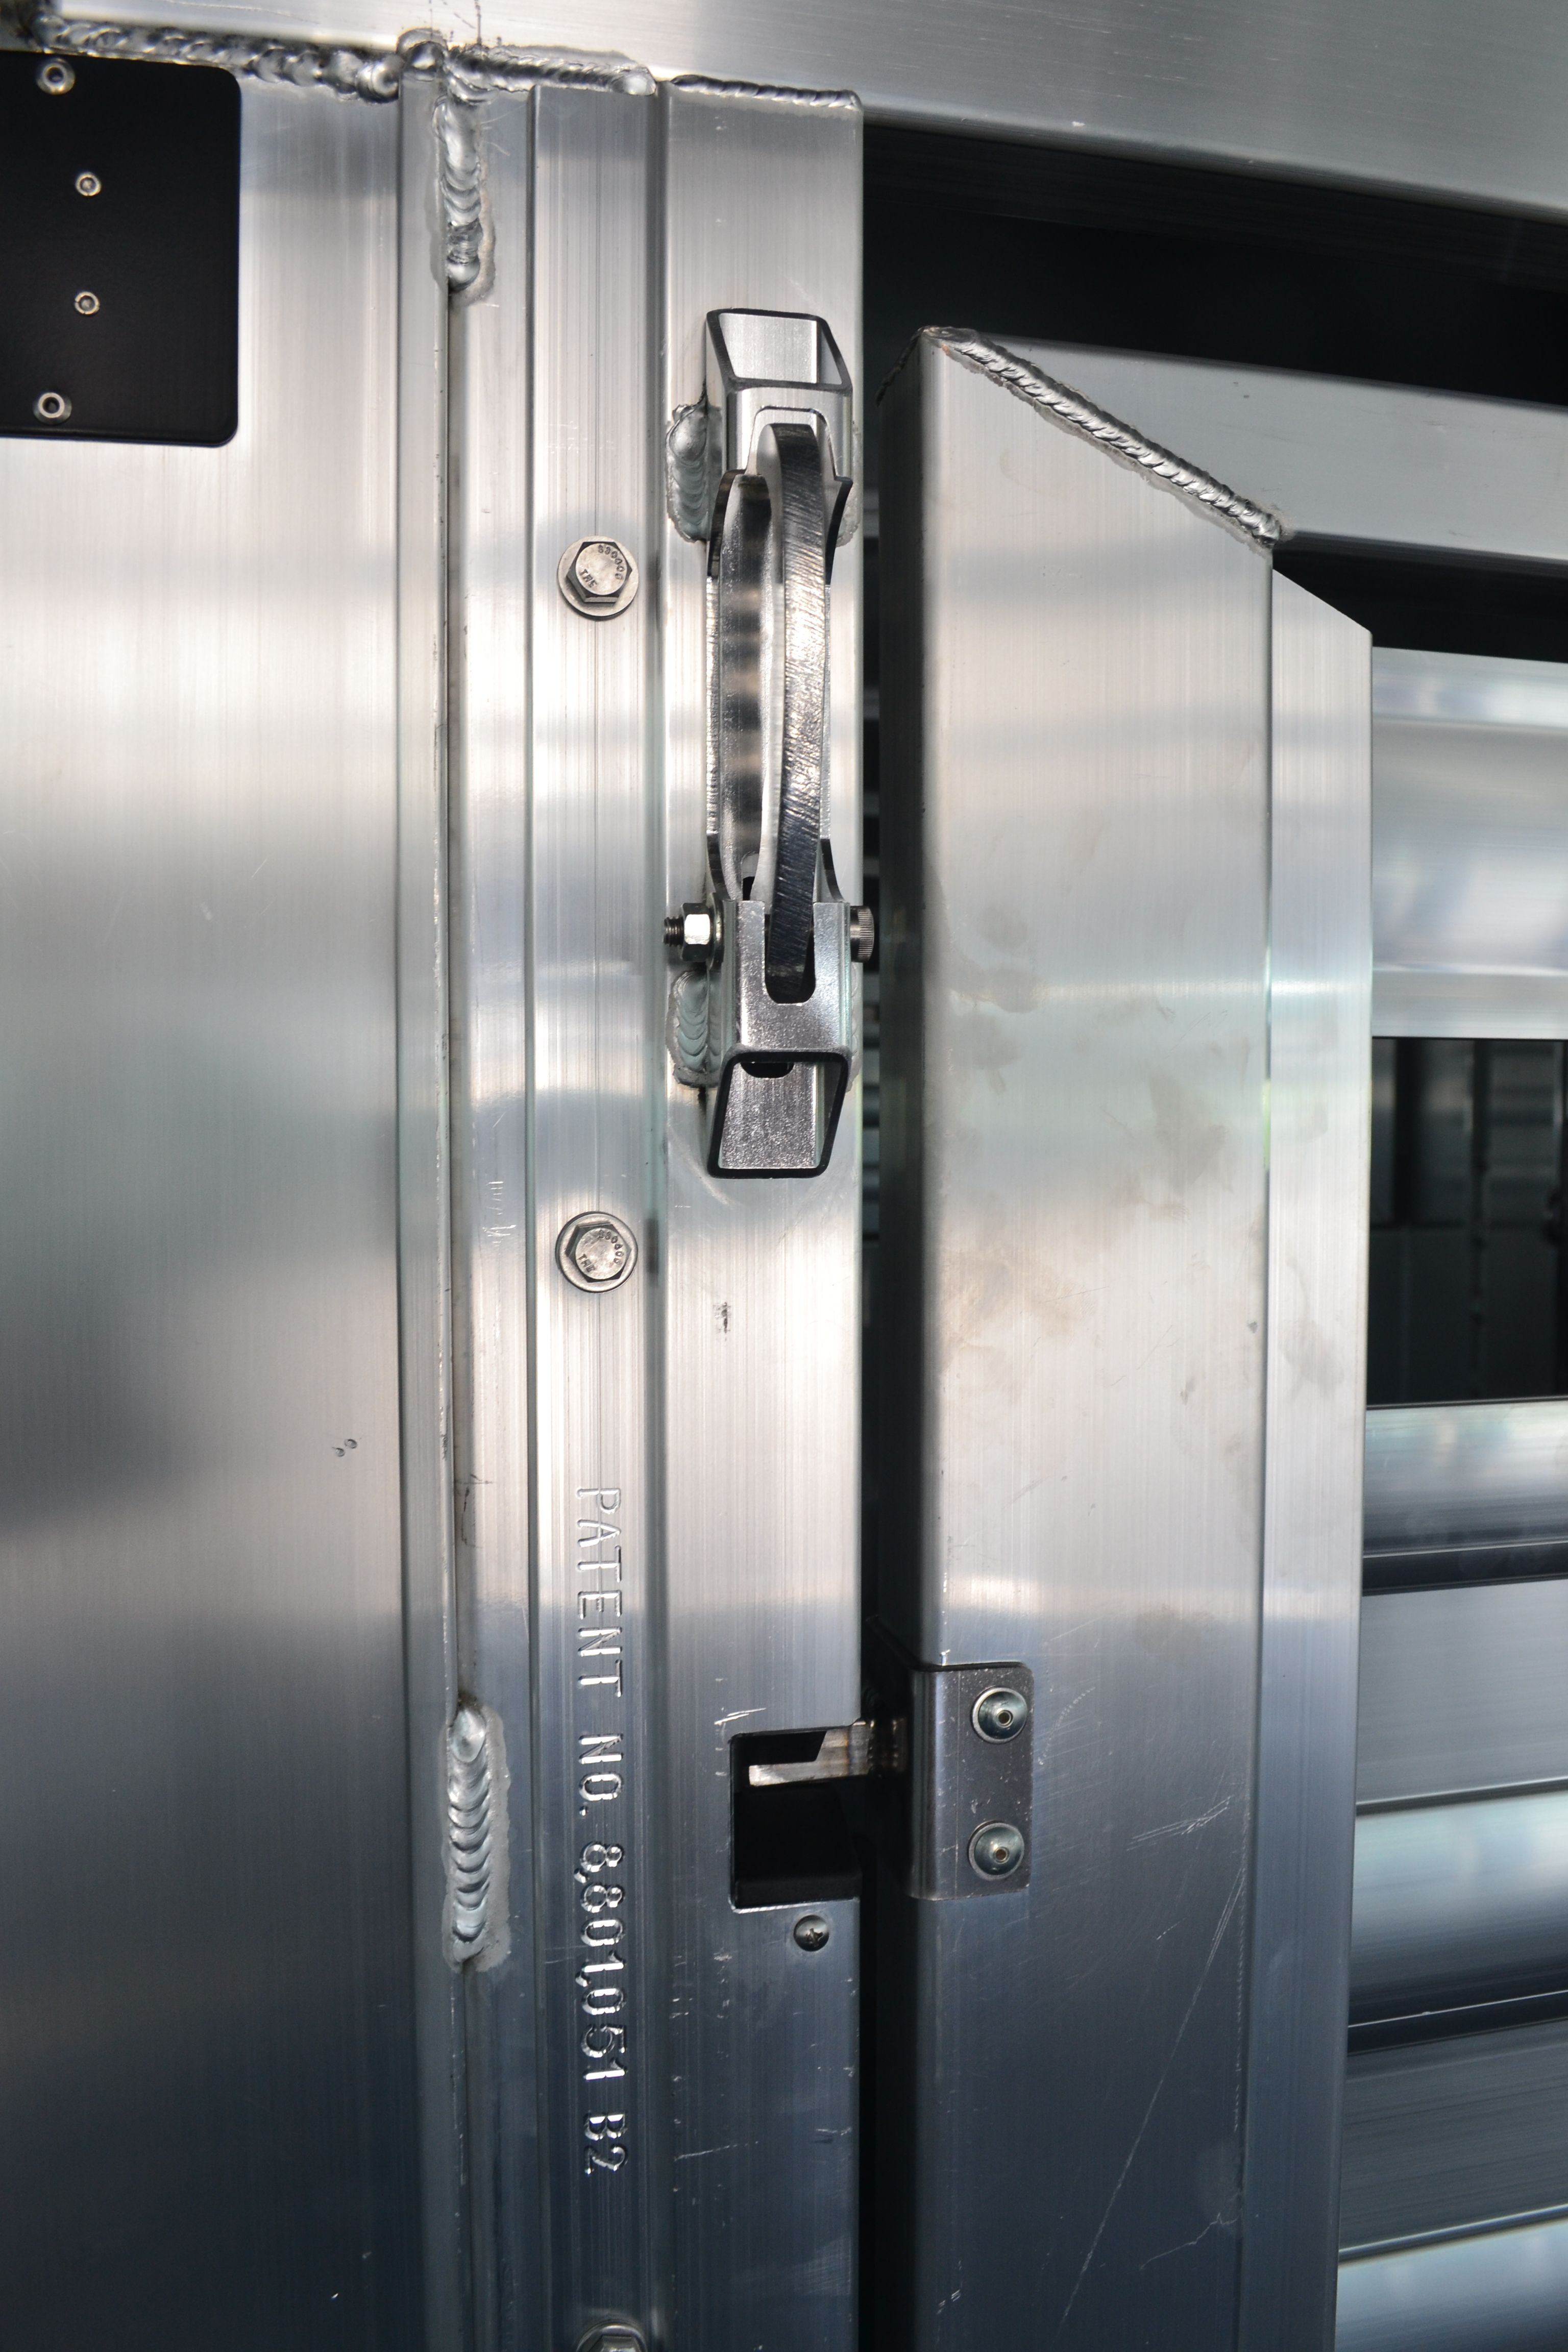 4 star slam latch system 4 star trailers pinterest 4 star slam latch system custom trailers sciox Images